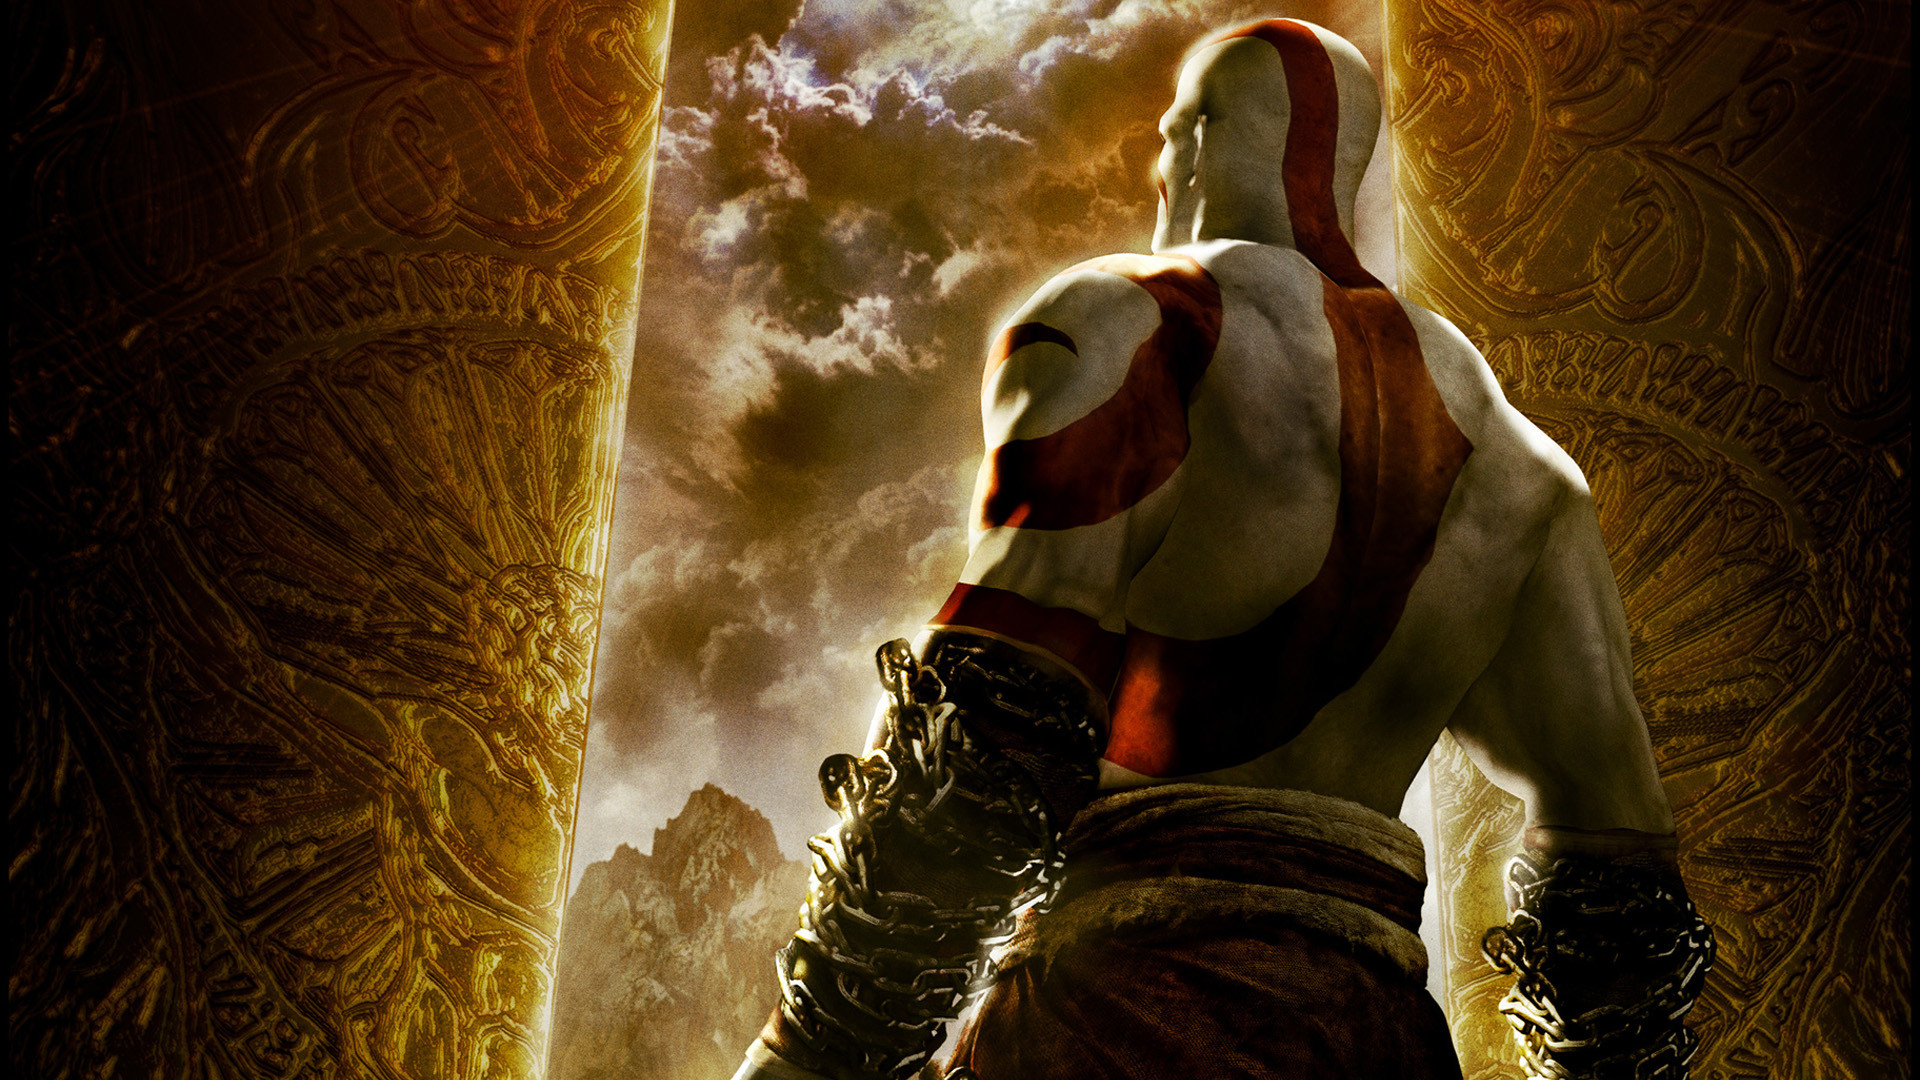 1920x1080 God Of War: Ascension HD Wallpapers Backgrounds Wallpaper God Of War Images Wallpapers  Wallpapers)